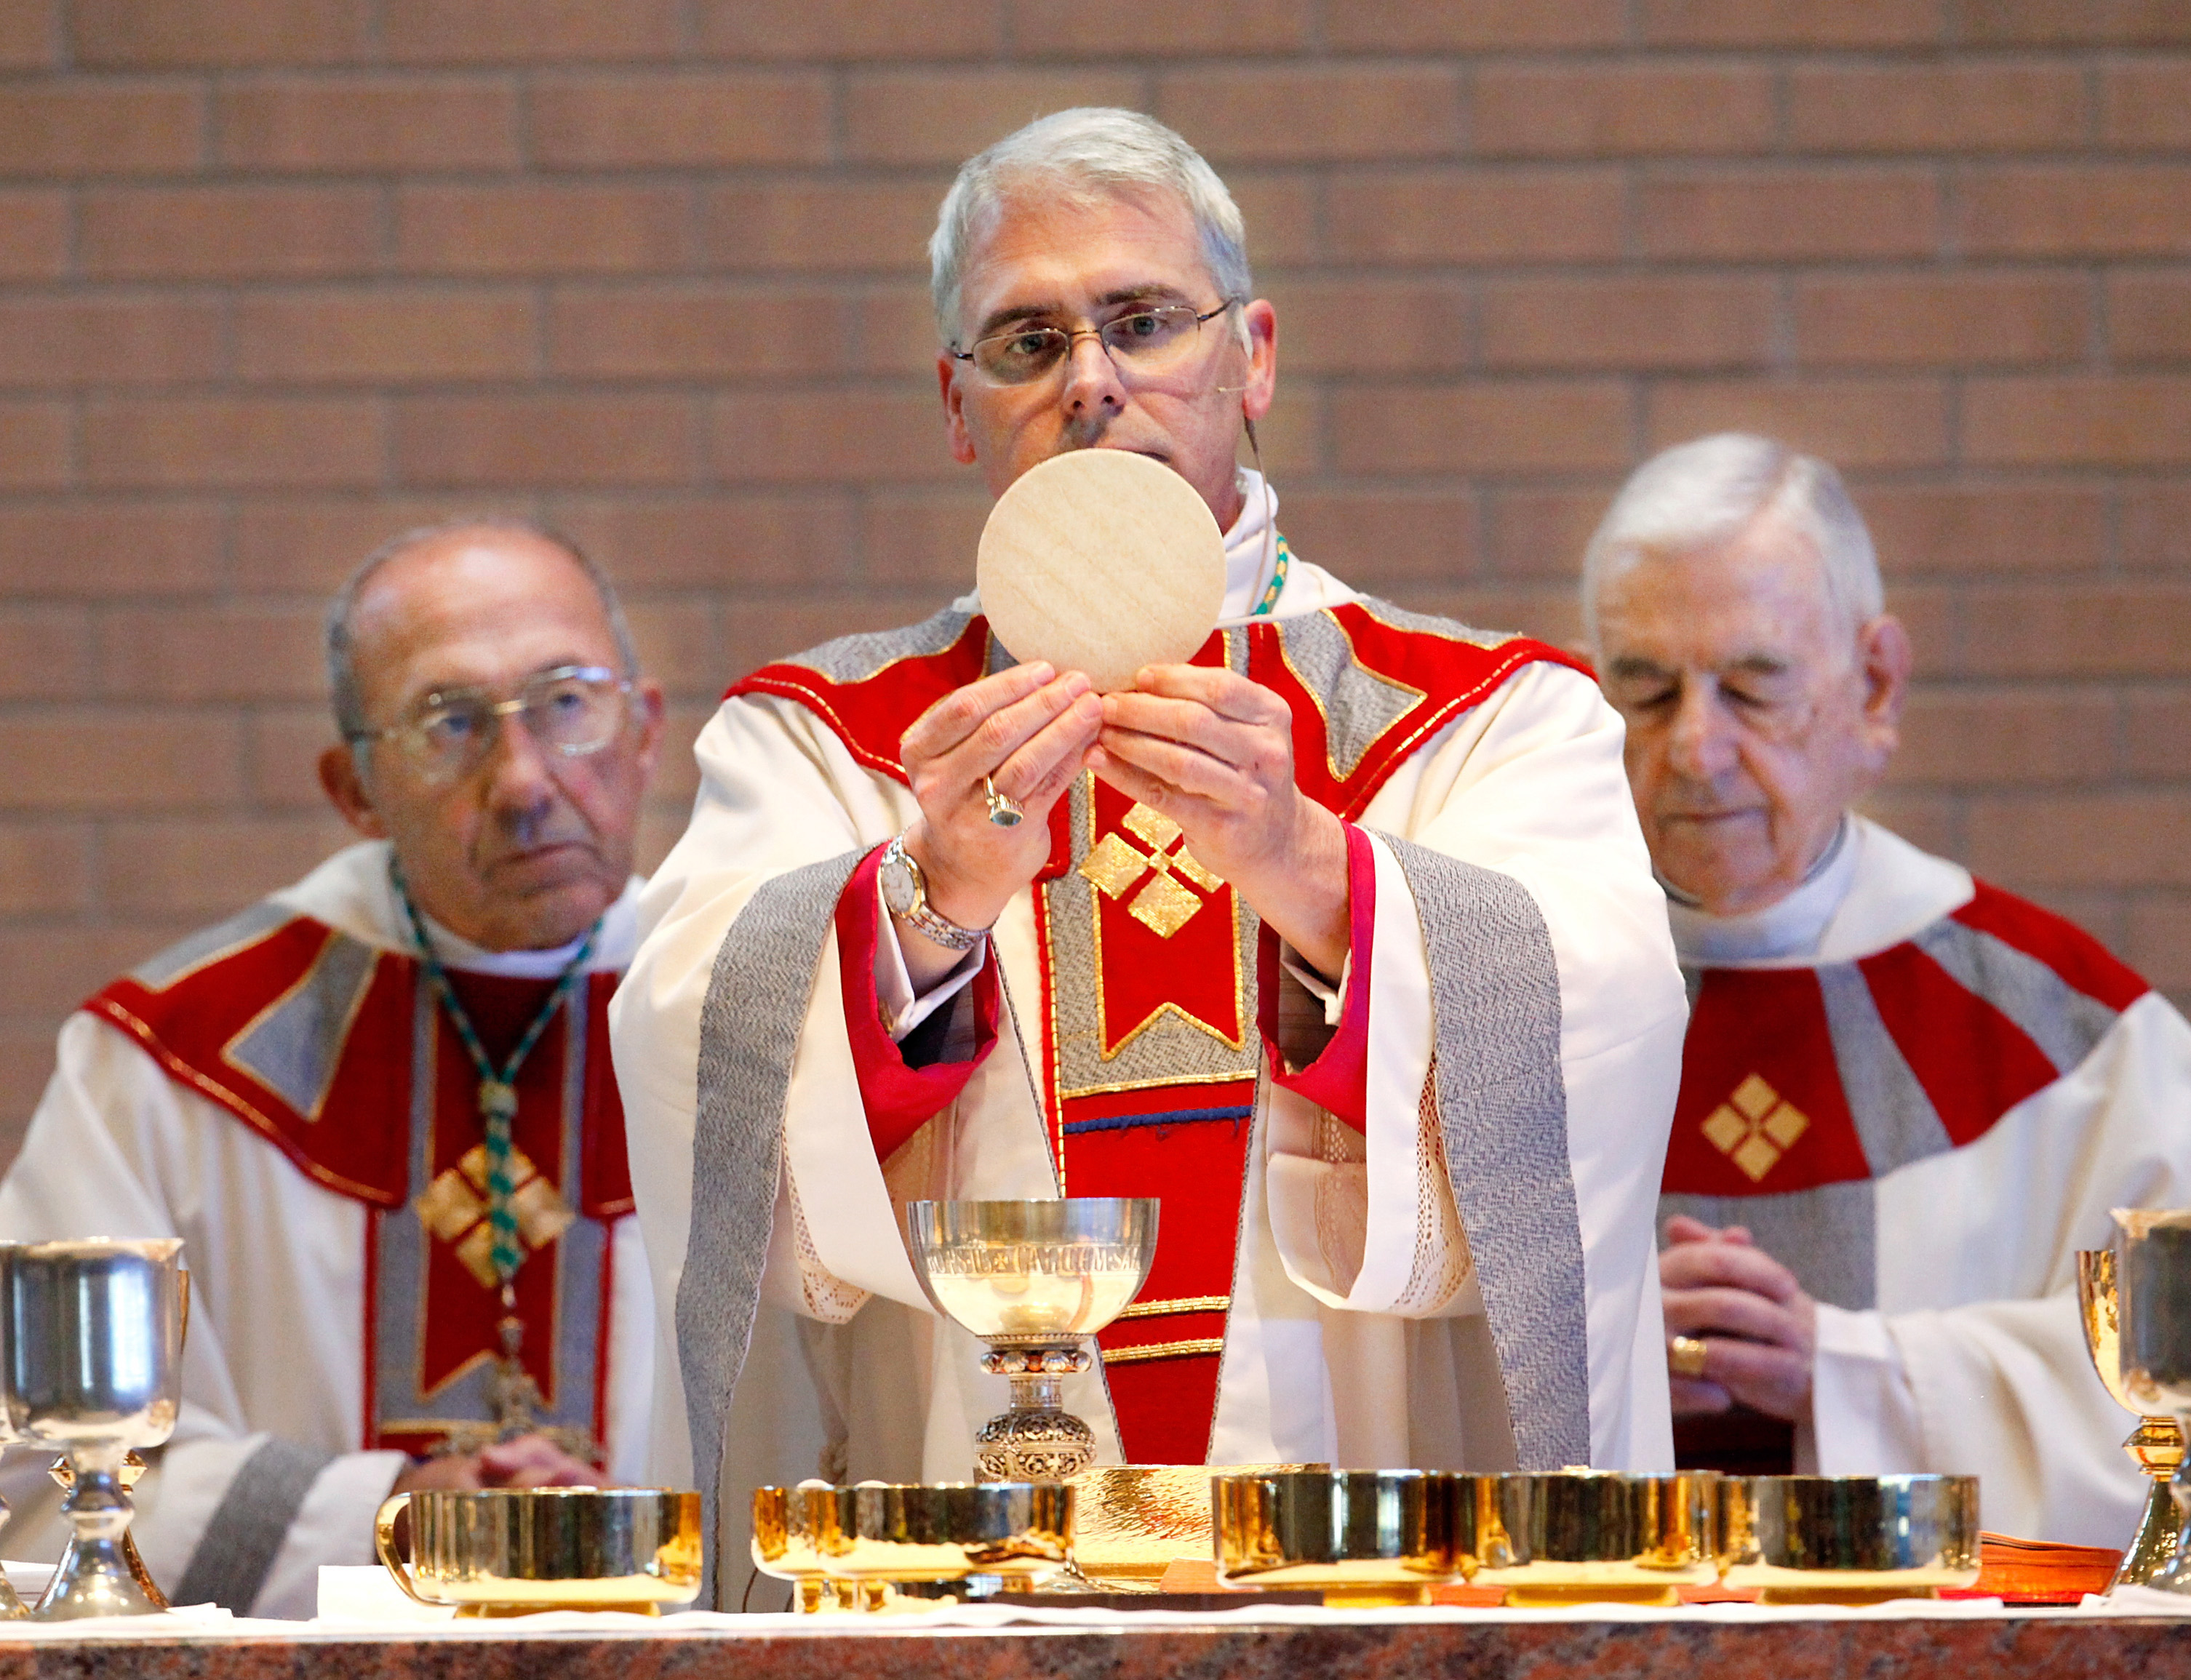 In this Feb. 11, 2011 file photo, Archbishop Paul Coakley, center, holds a communion wafer as he is installed as the fourth archbishop of the Oklahoma City Archdiocese in a ceremony at St. John the Baptist Catholic Church, in Edmond, Okla.